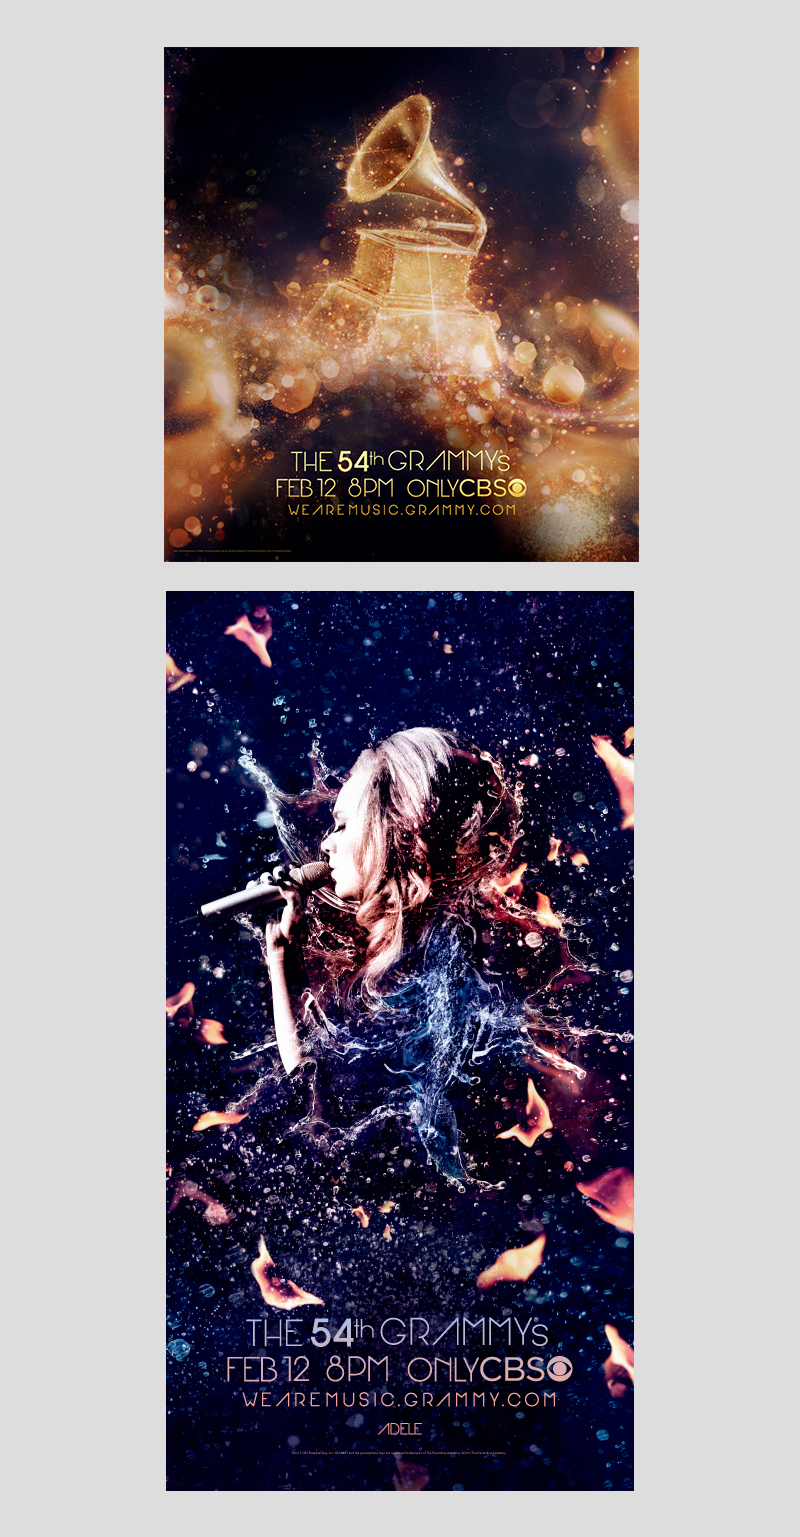 Grammy 2012 Outdoor Posters: Layout | Production